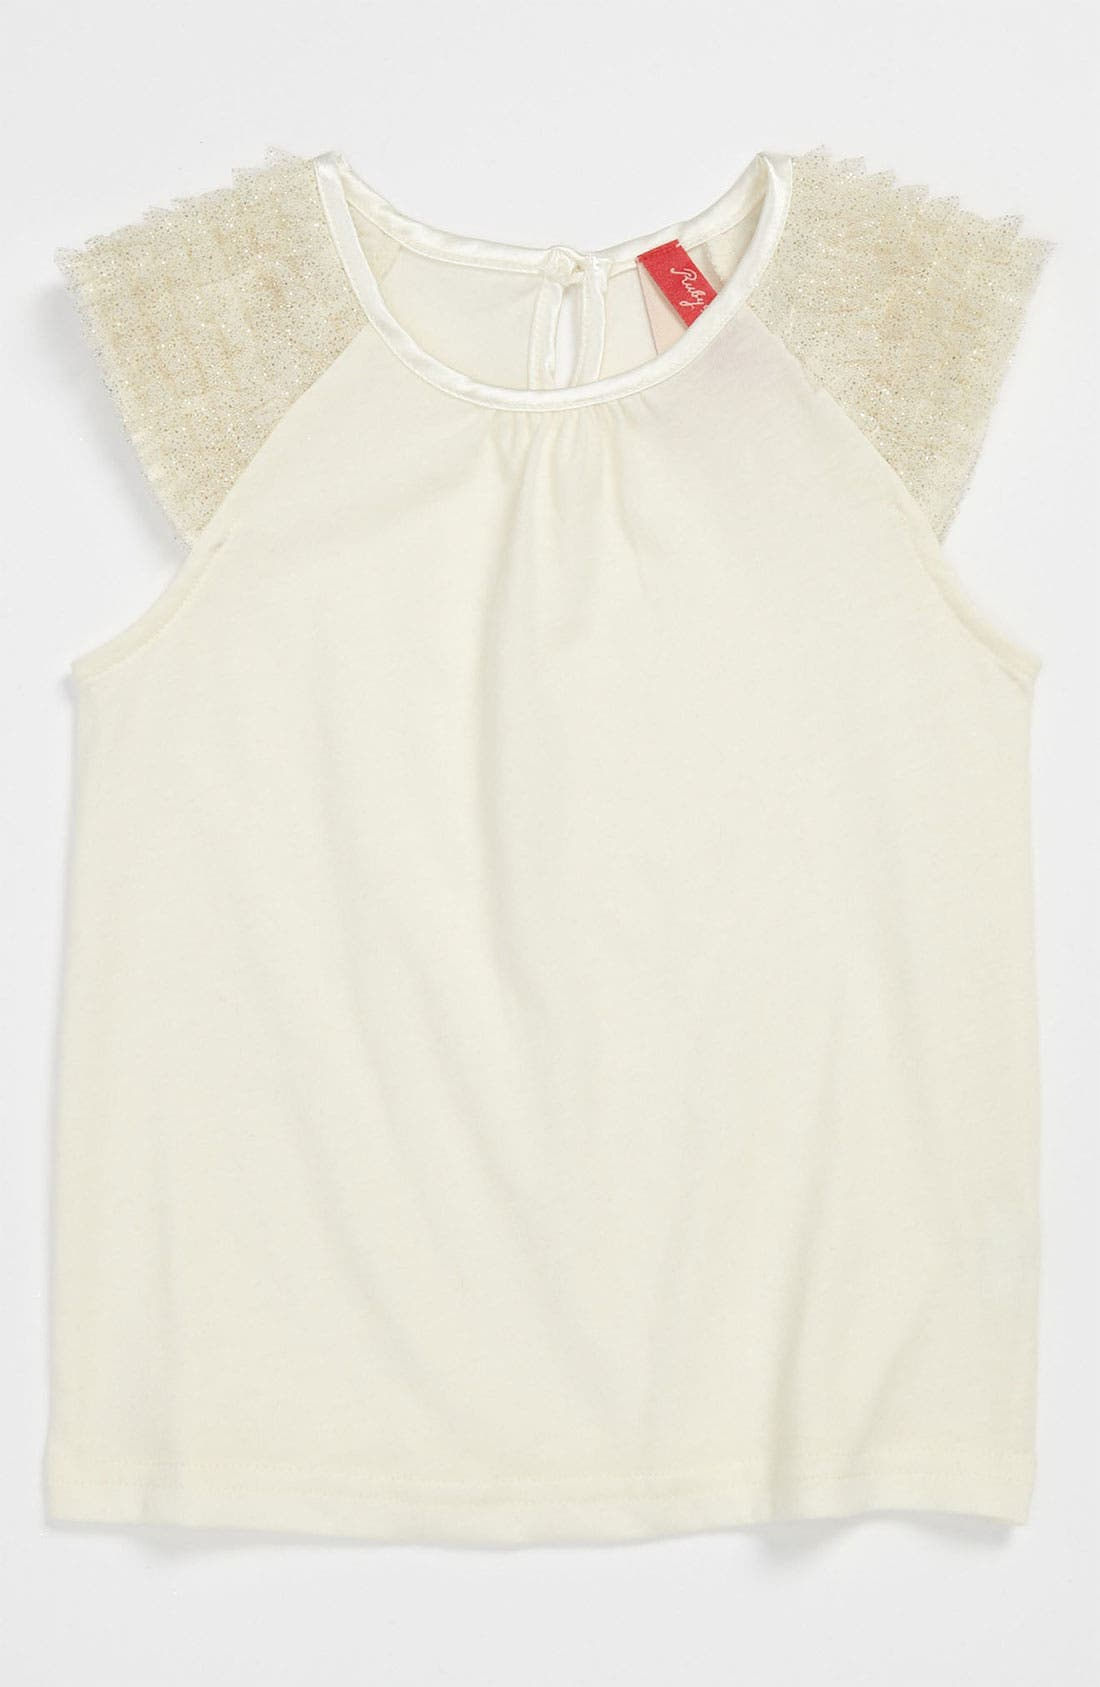 Alternate Image 1 Selected - Ruby & Bloom 'Mariah' Knit Top (Toddler)